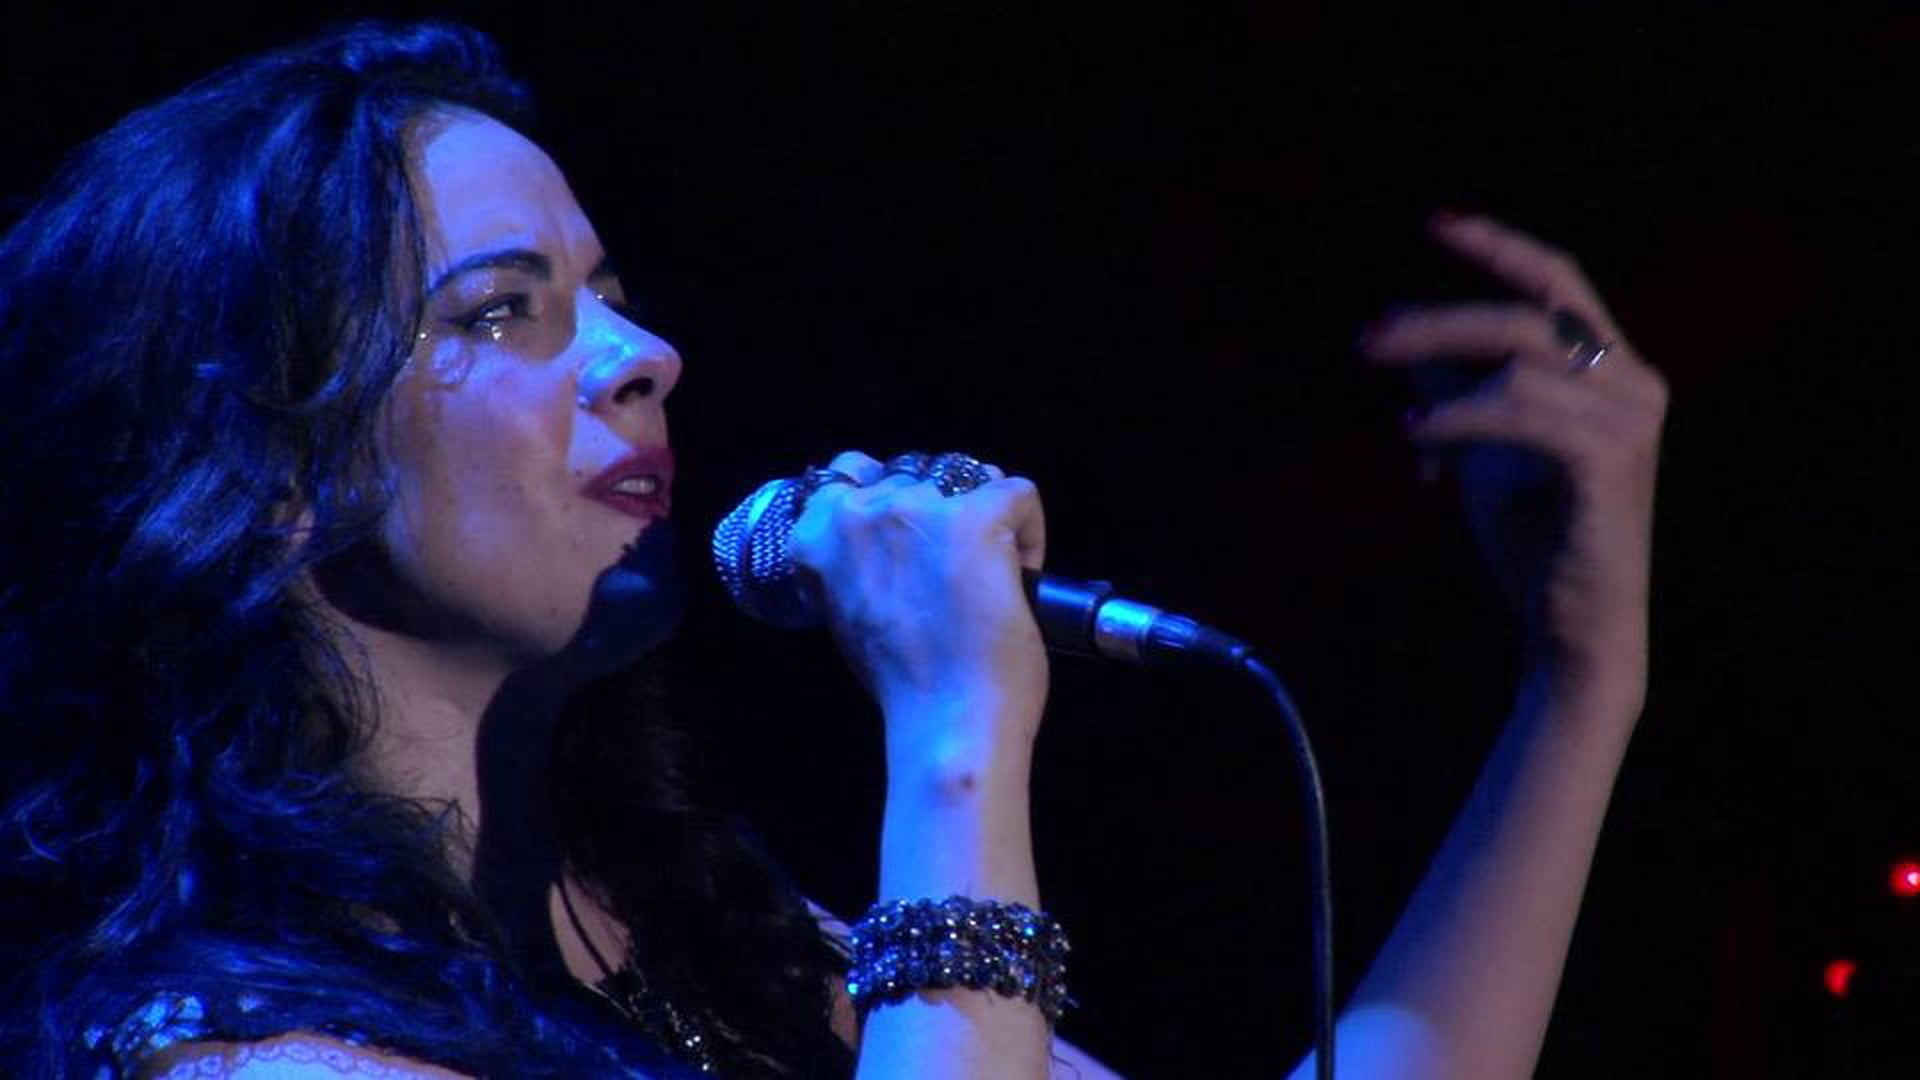 CAMILLE O'SULLIVAN - (ARE YOU) THE ONE I'VE BEEN WAITING FOR?